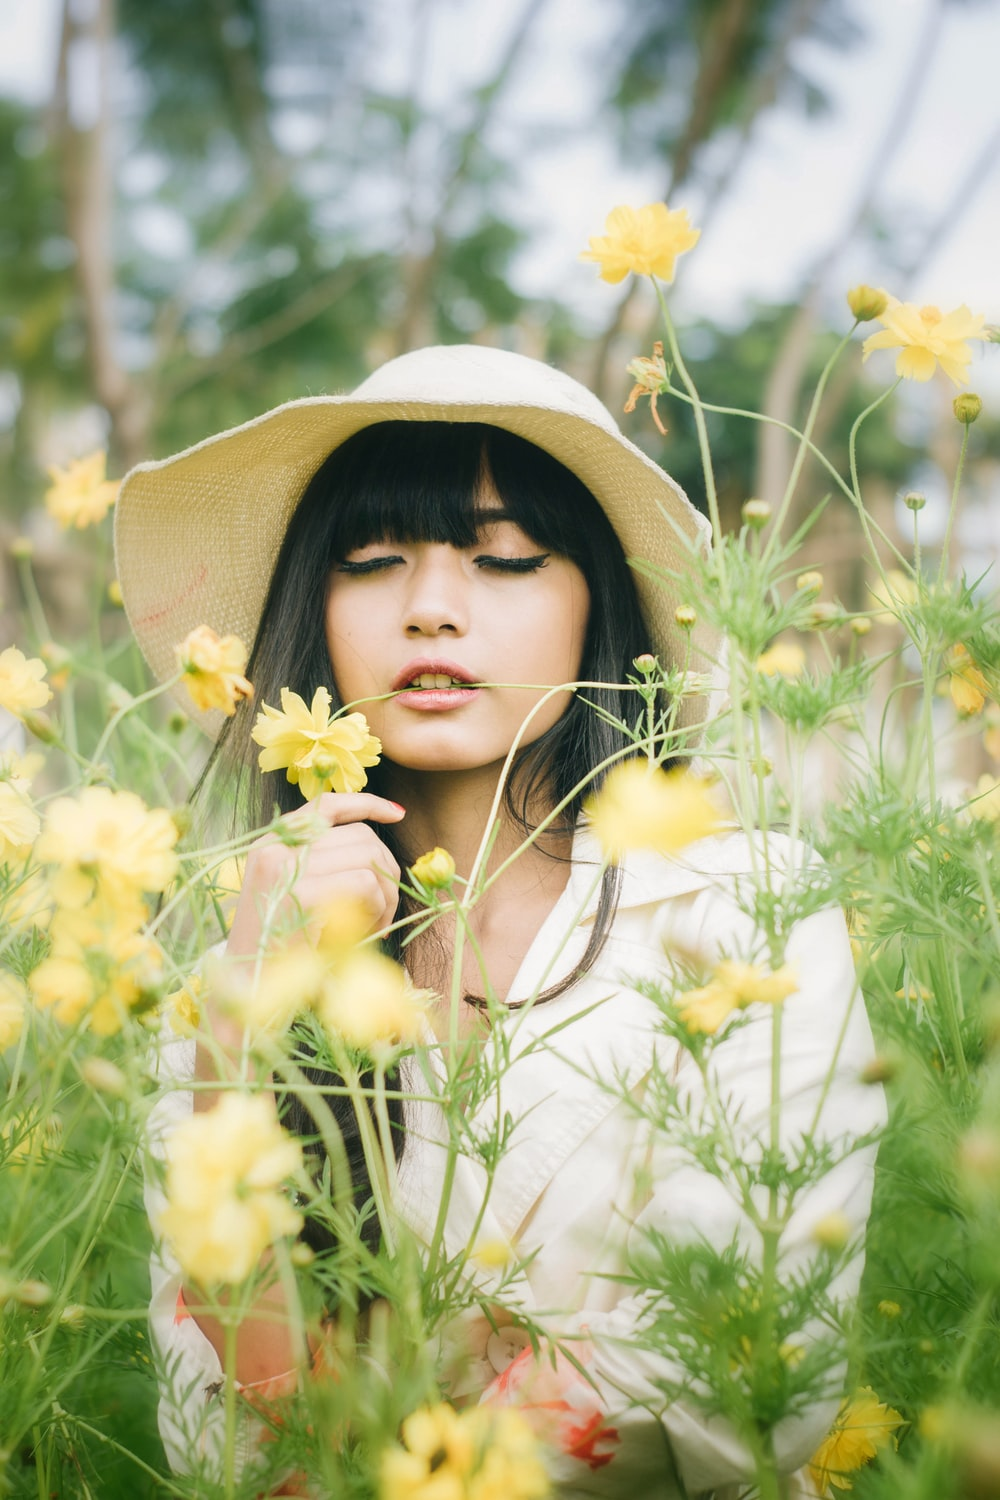 woman in white long sleeve shirt wearing brown sun hat standing on yellow flower field during